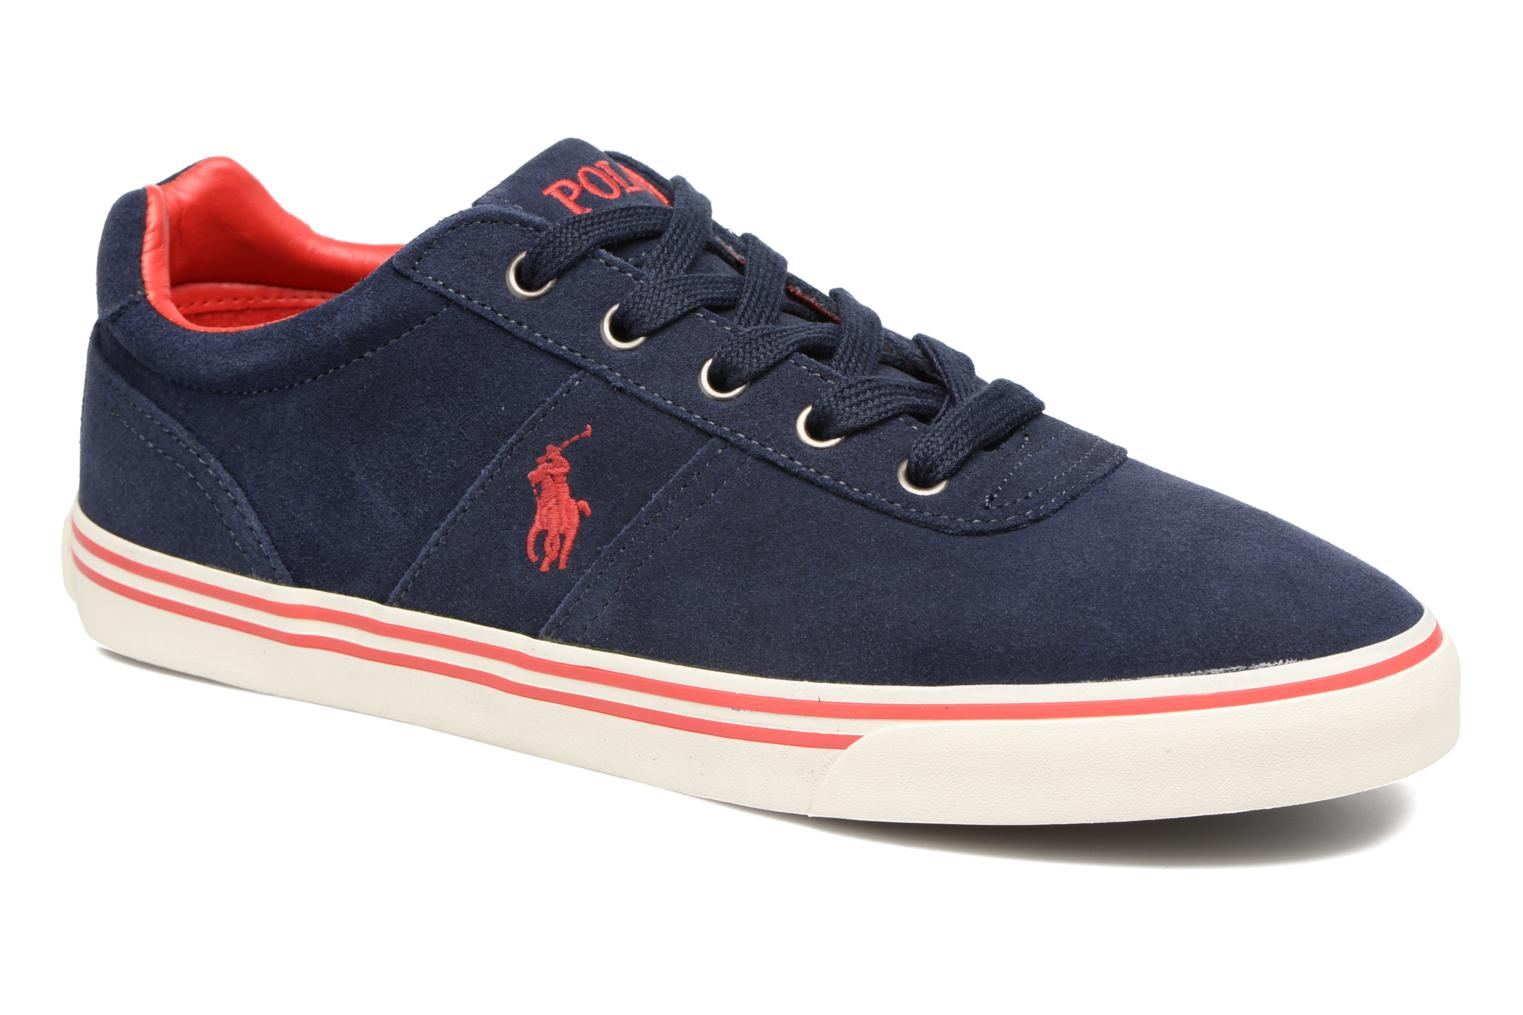 Hanford-Sneakers-Vulc by Polo Ralph Lauren